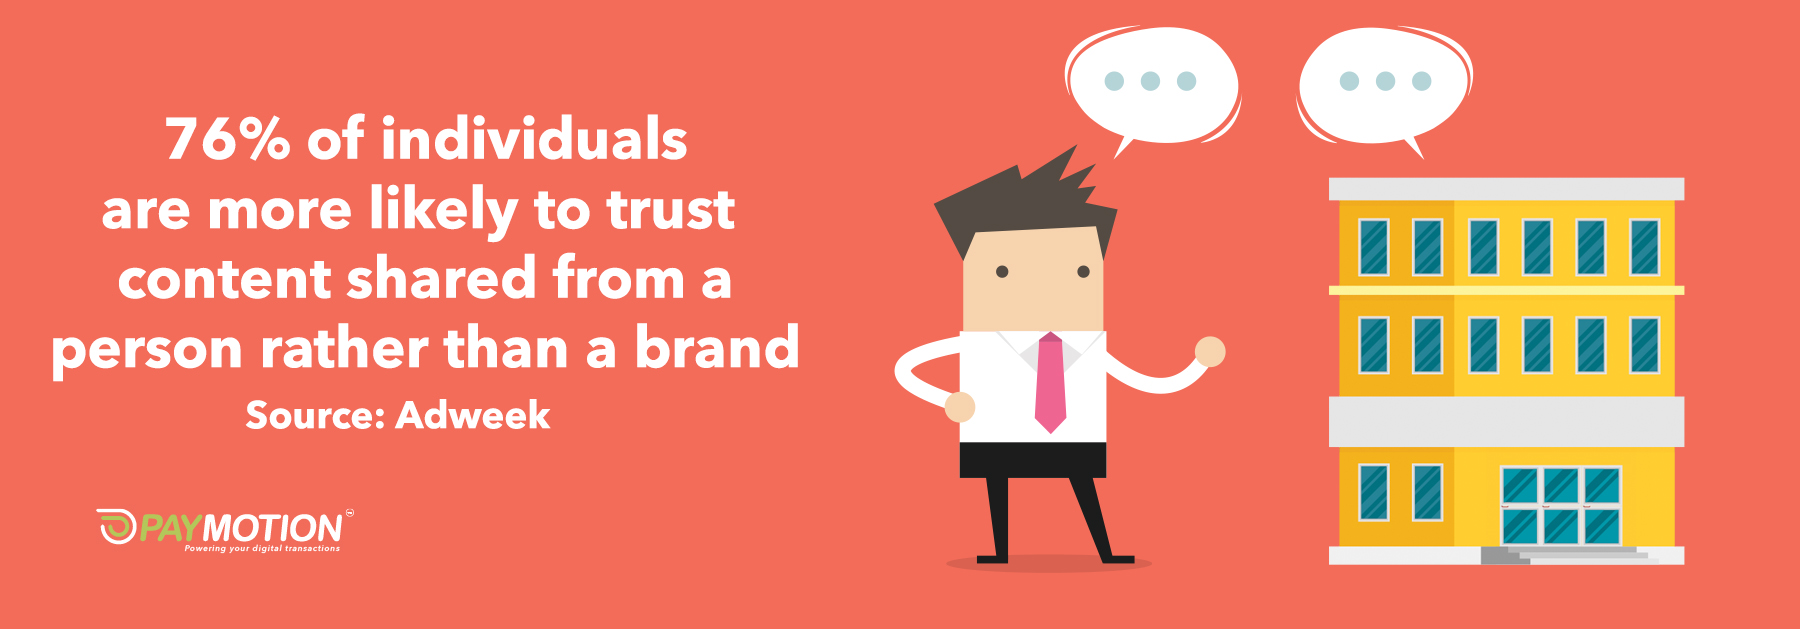 76% of individuals are more likely to trust content shared from a person rather than a brand